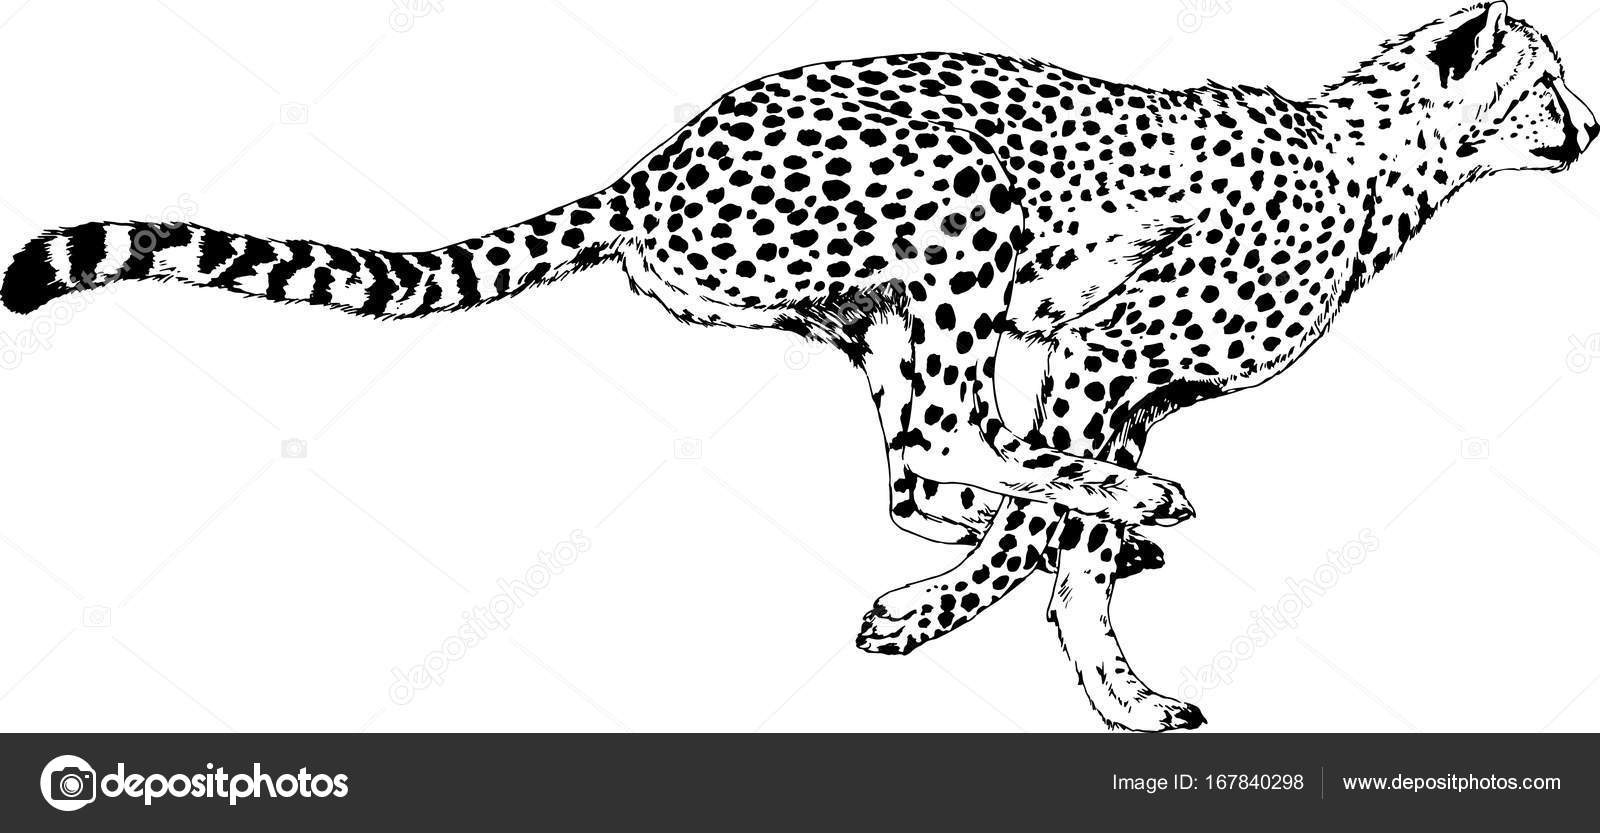 ᐈ cheetah stock icon royalty free cheetah logo cliparts download on depositphotos https depositphotos com 167840298 stock illustration running cheetah drawn in ink html